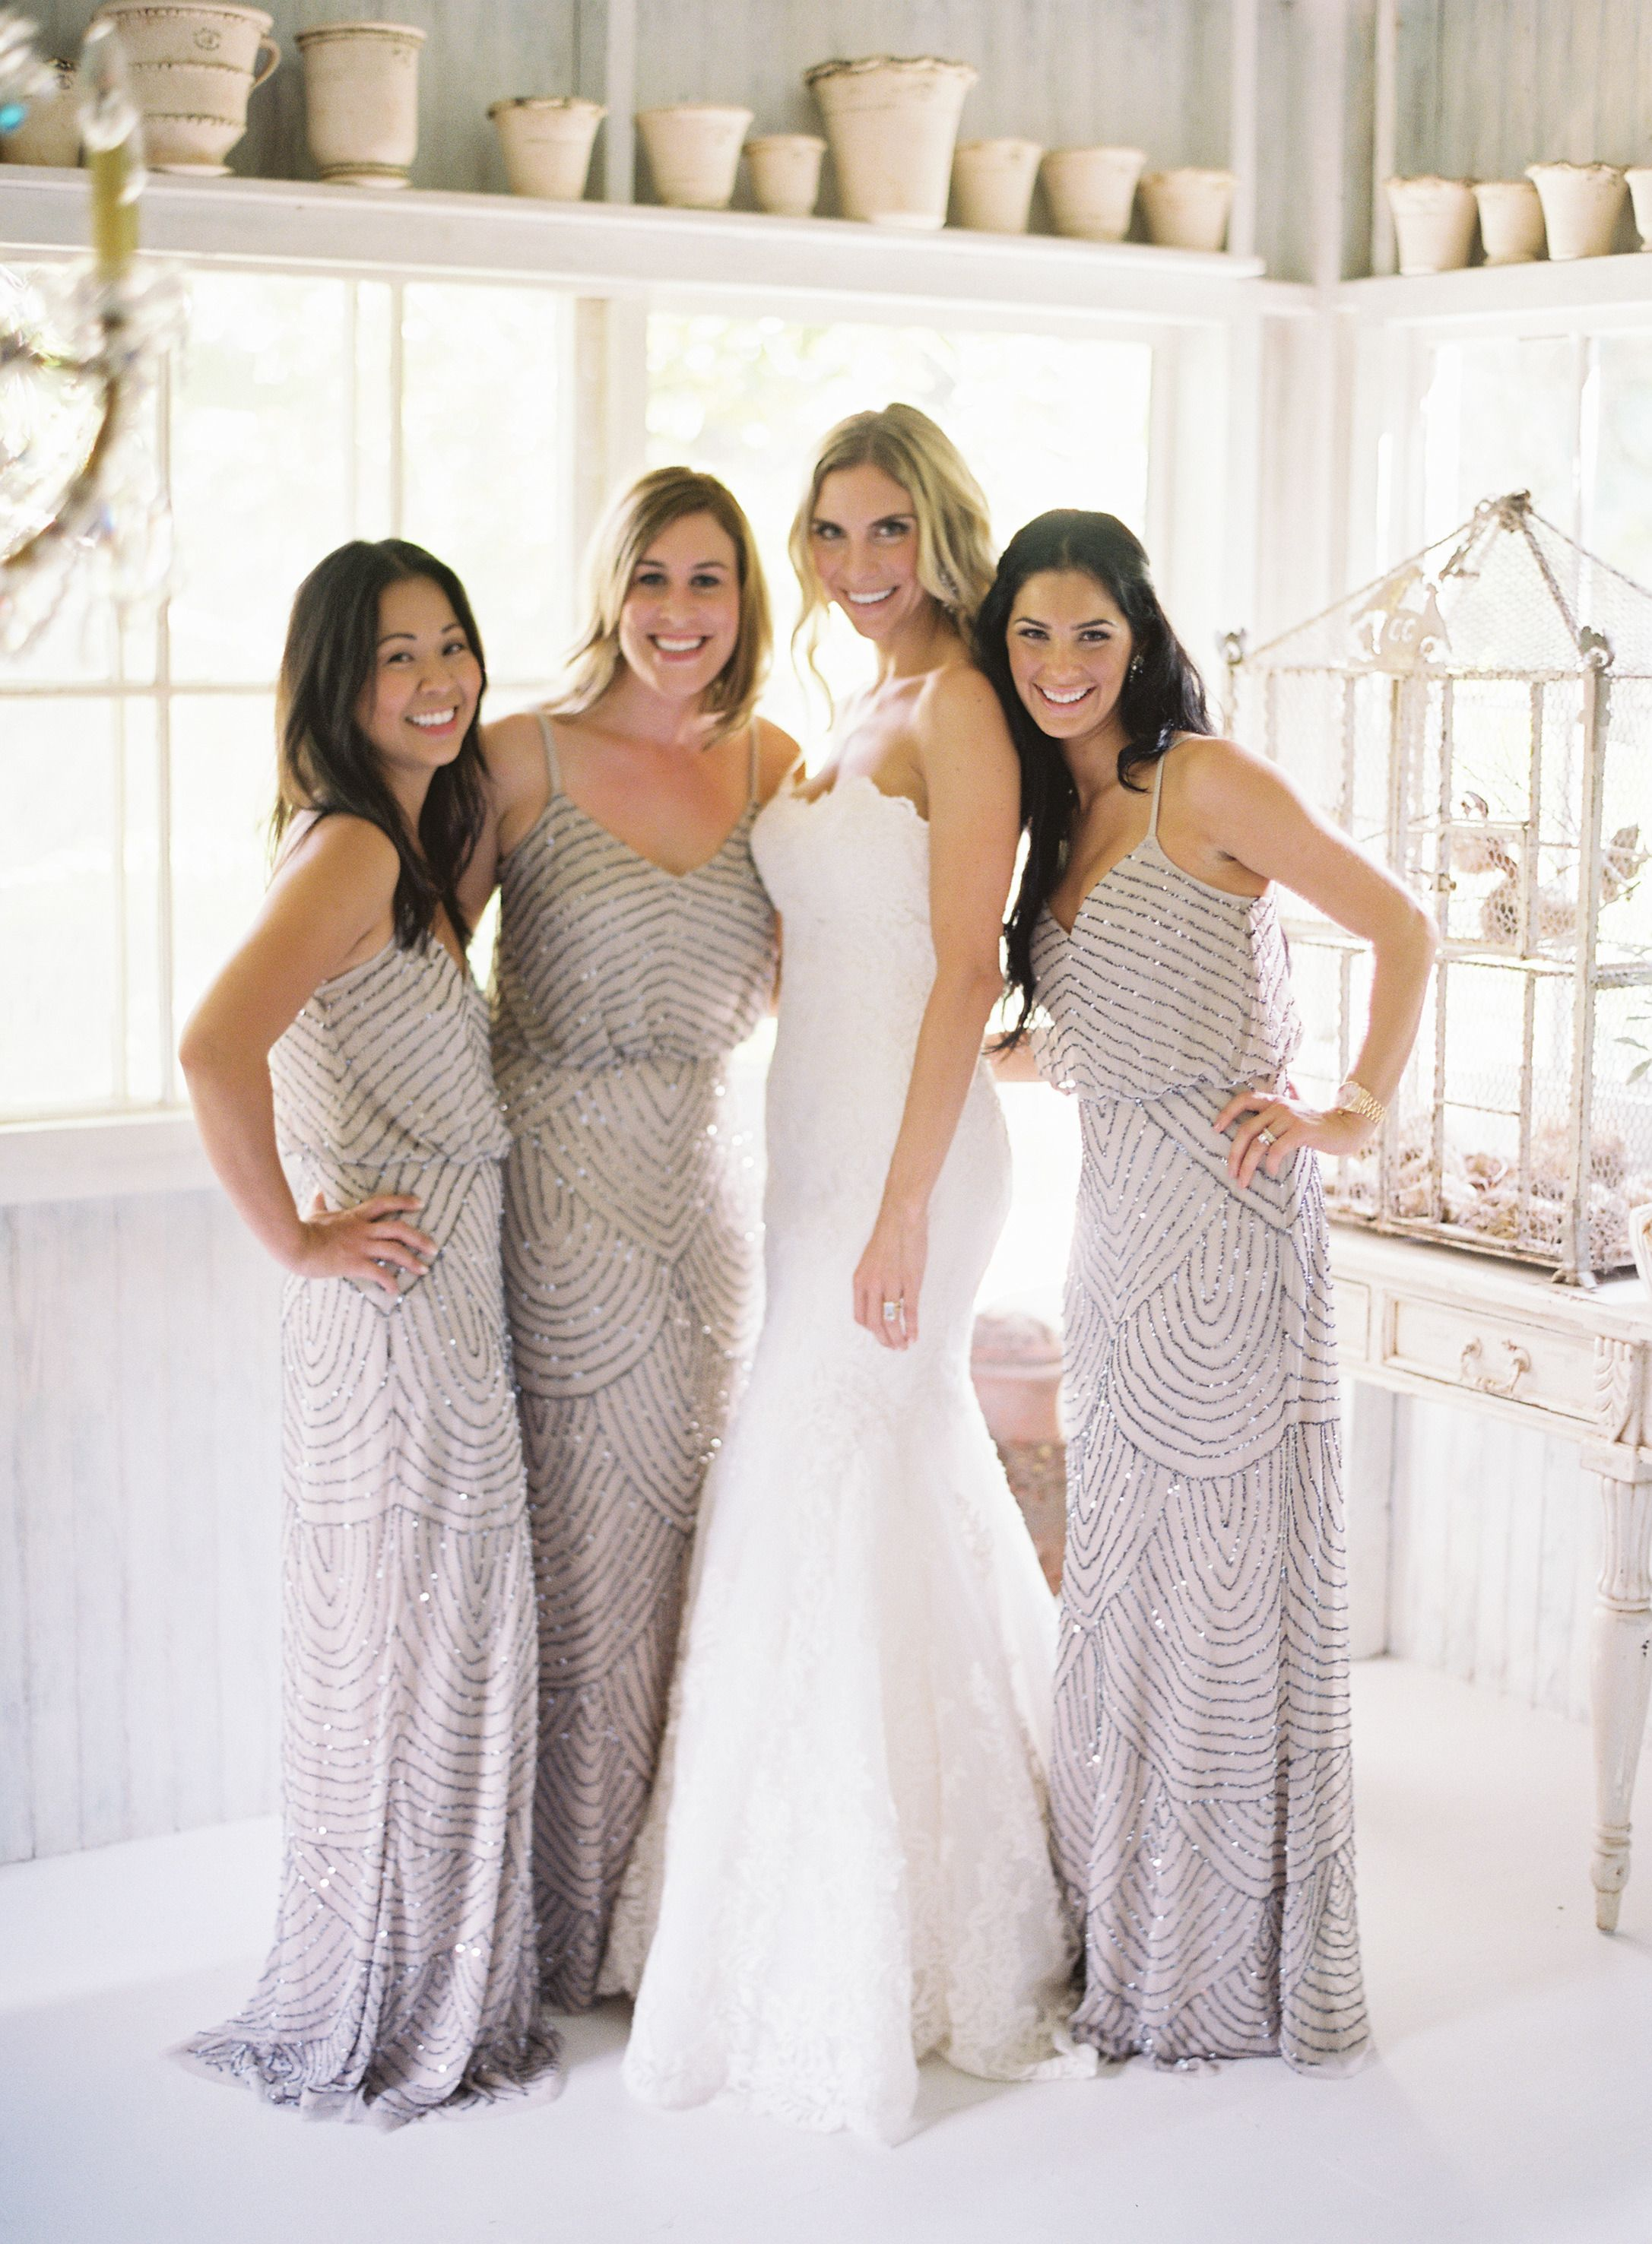 Destination glam haiku mill wedding beautiful wedding and brides a flattering style with a loose fit bodice and sequin beaded detailing throughout sparkly bridesmaid dresses ombrellifo Choice Image